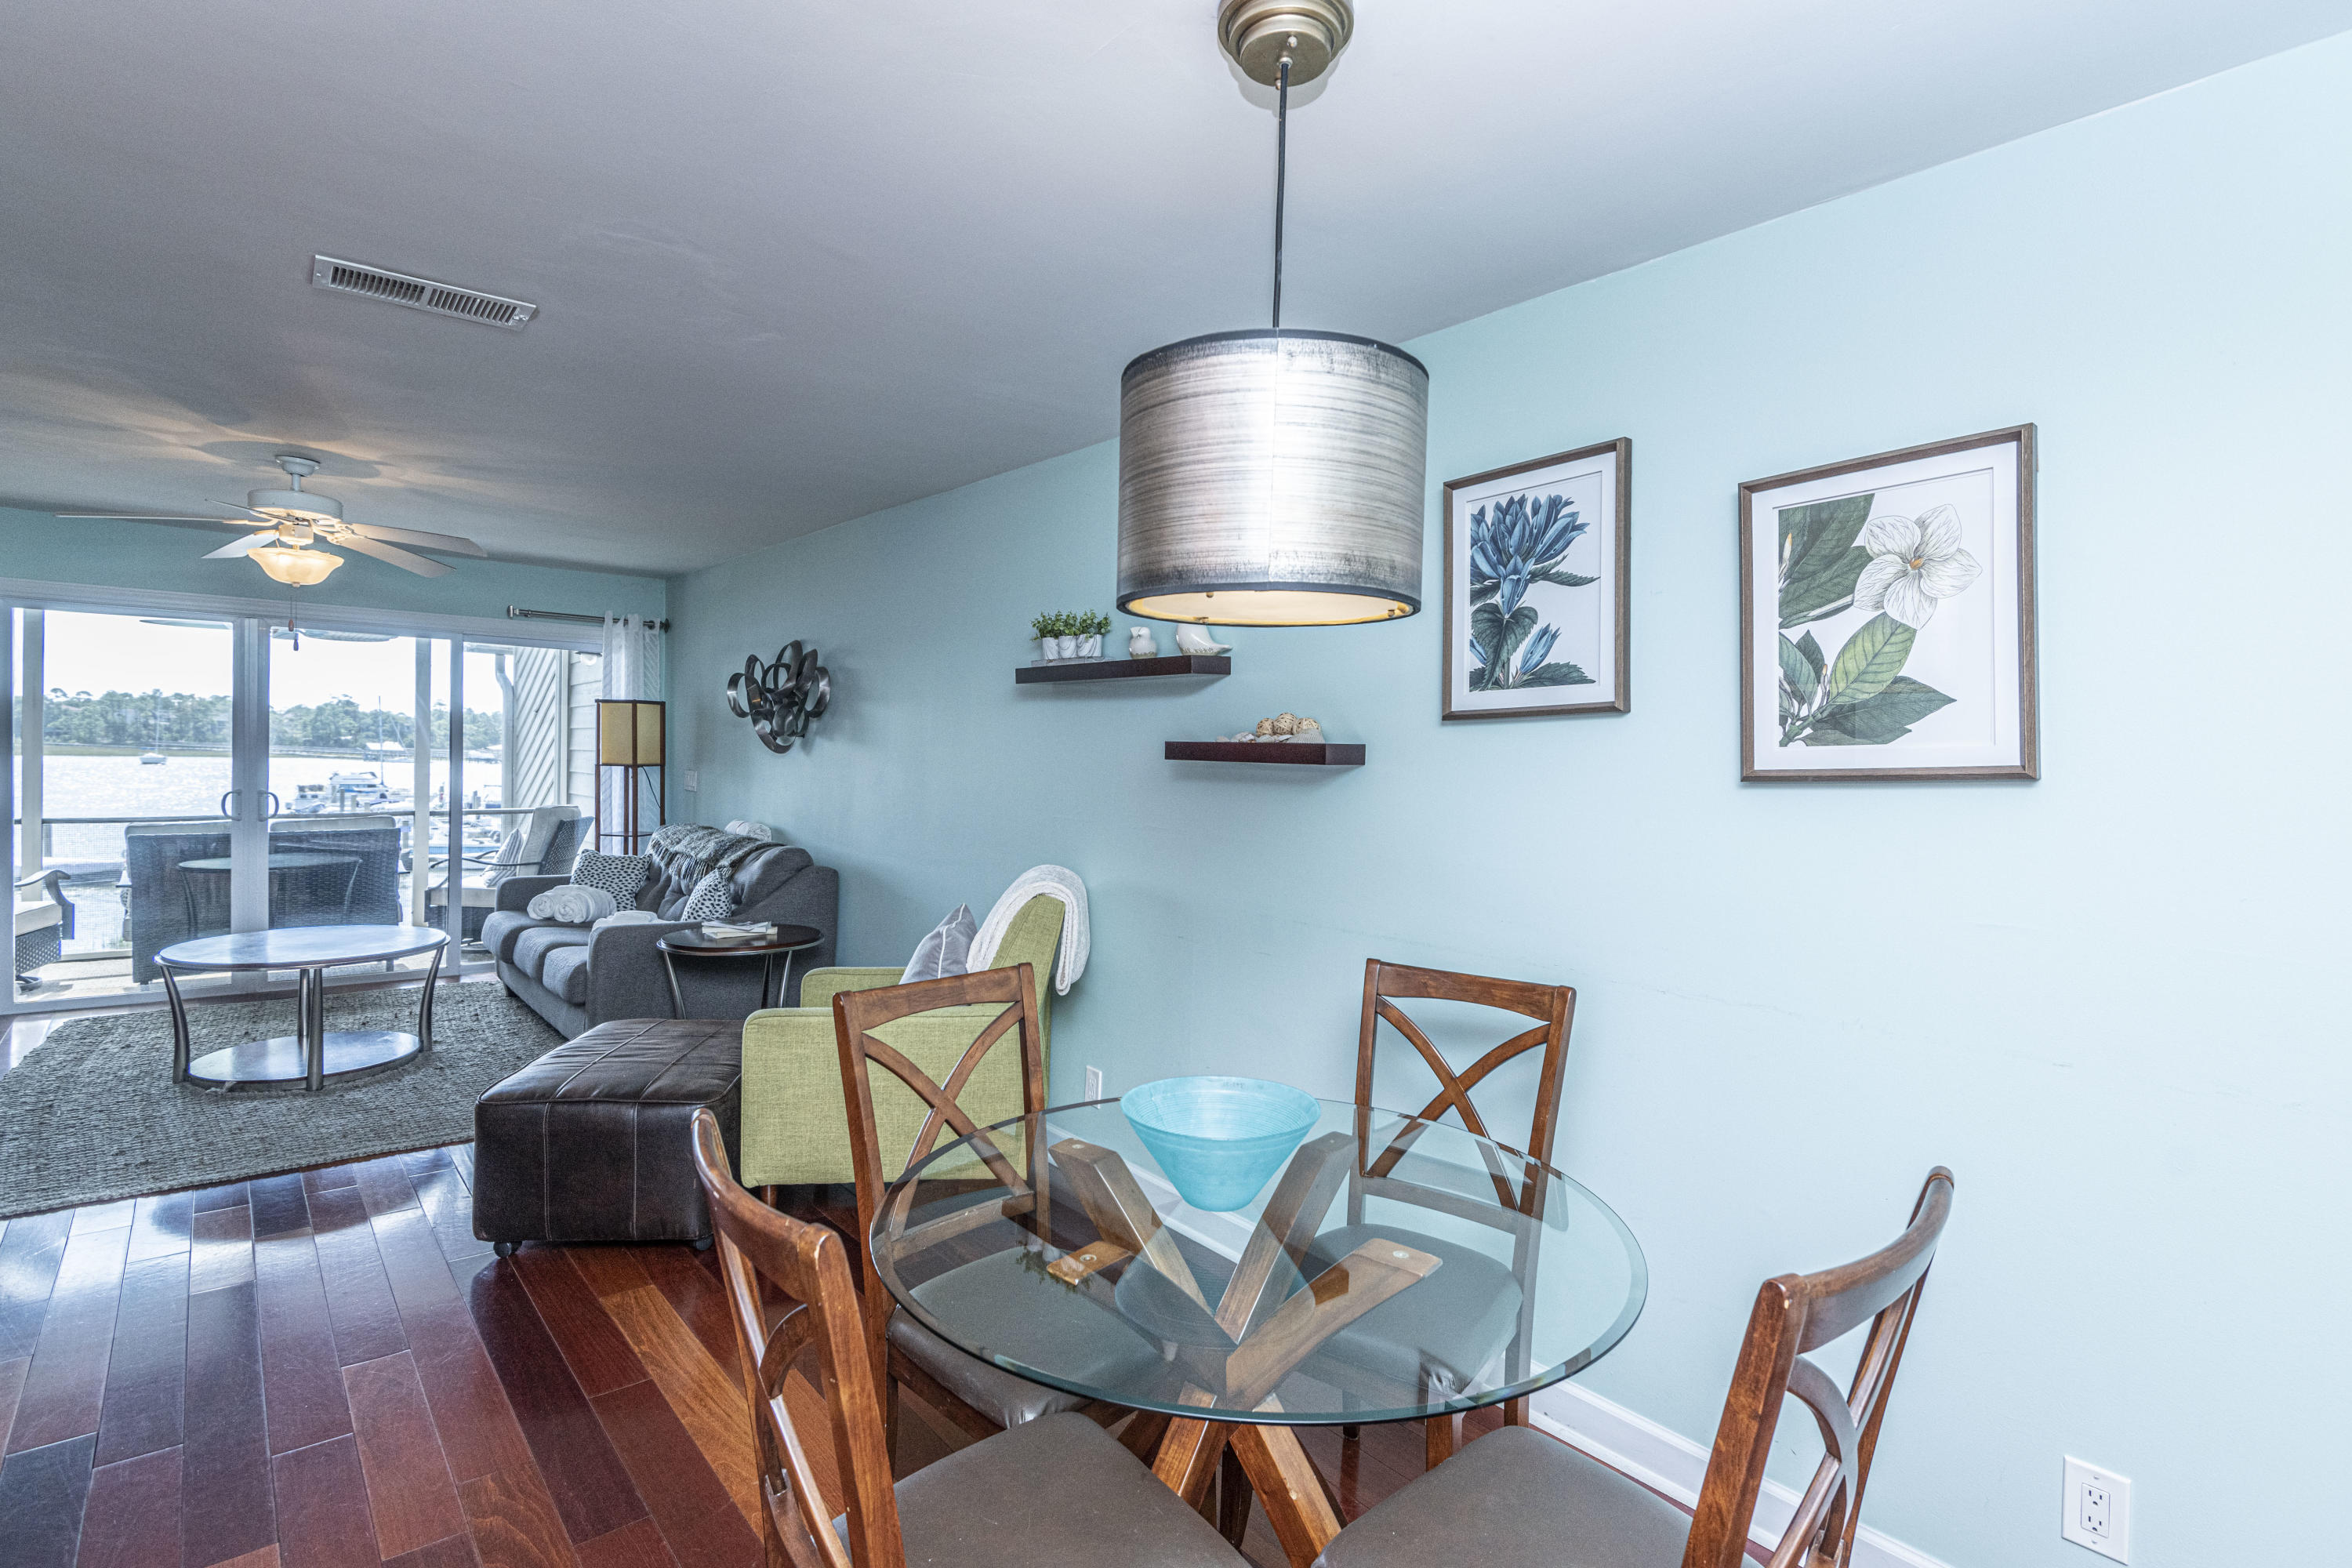 Mariners Cay Homes For Sale - 60 Mariners Cay, Folly Beach, SC - 38